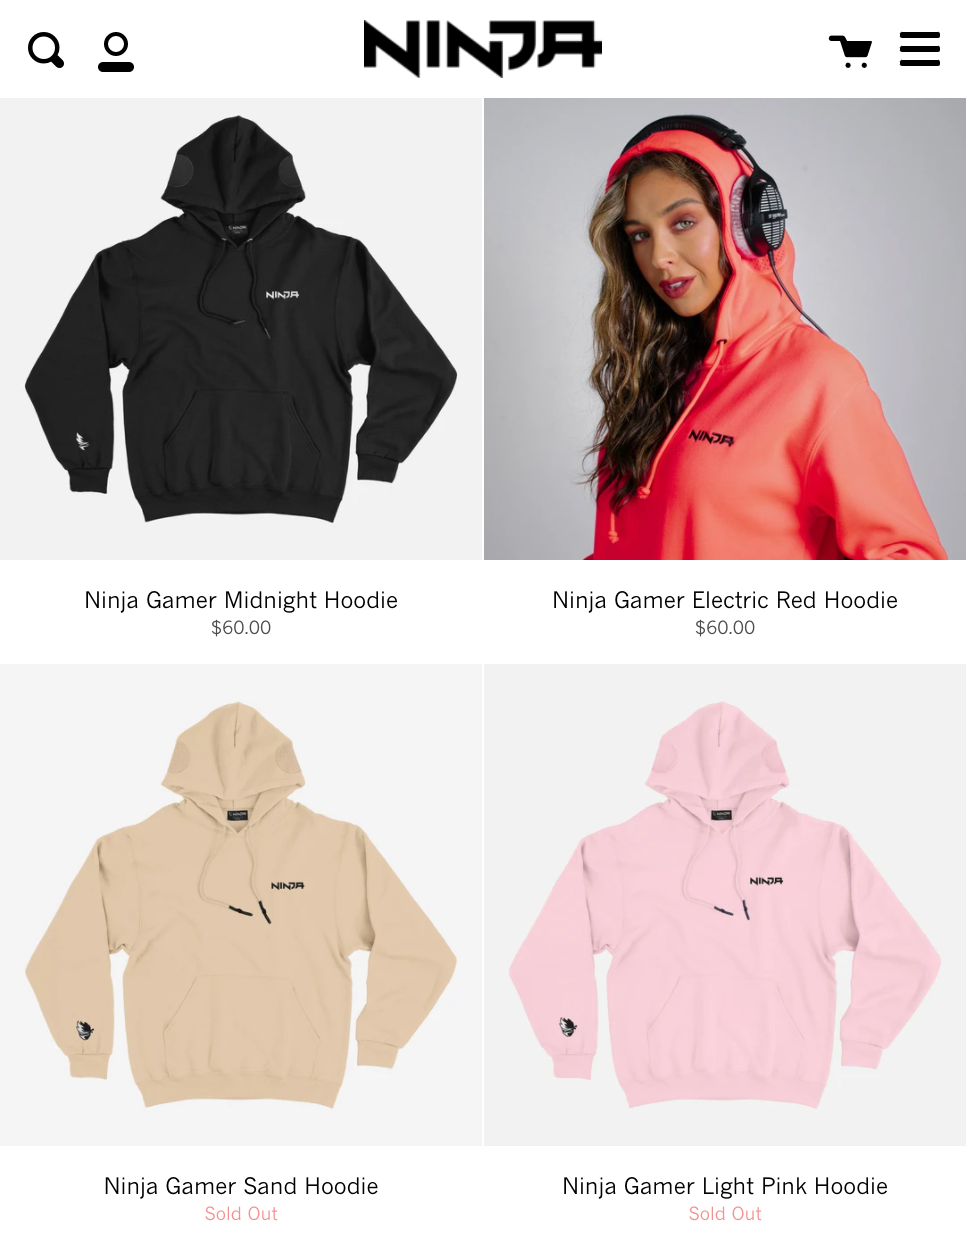 How to Make Money Streaming on Twitch: Ninja's Merchandise